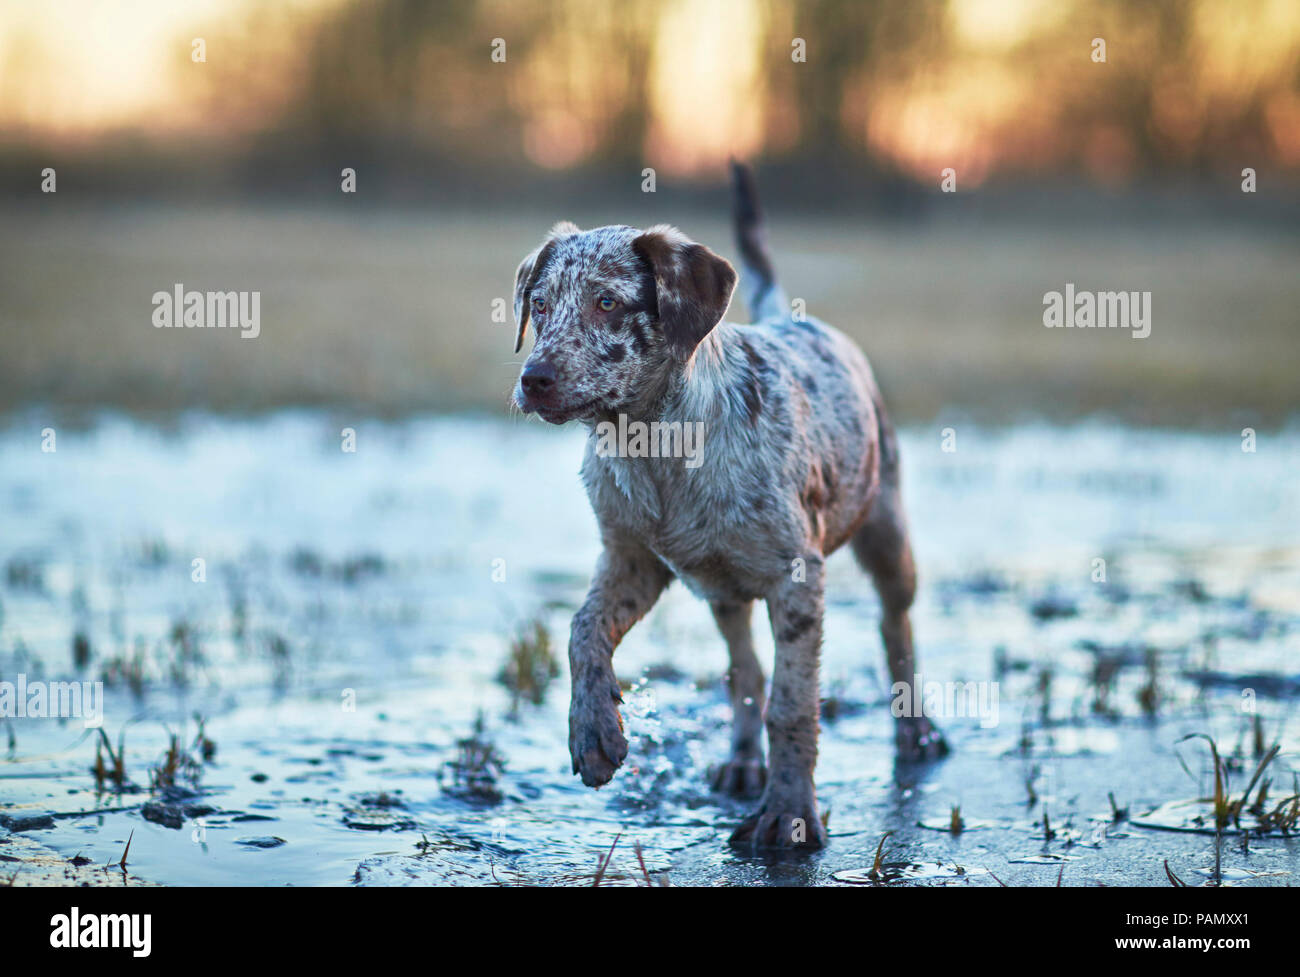 Mixed-breed dog. Puppy dog walking on frozen puddle at dusk. Germany - Stock Image